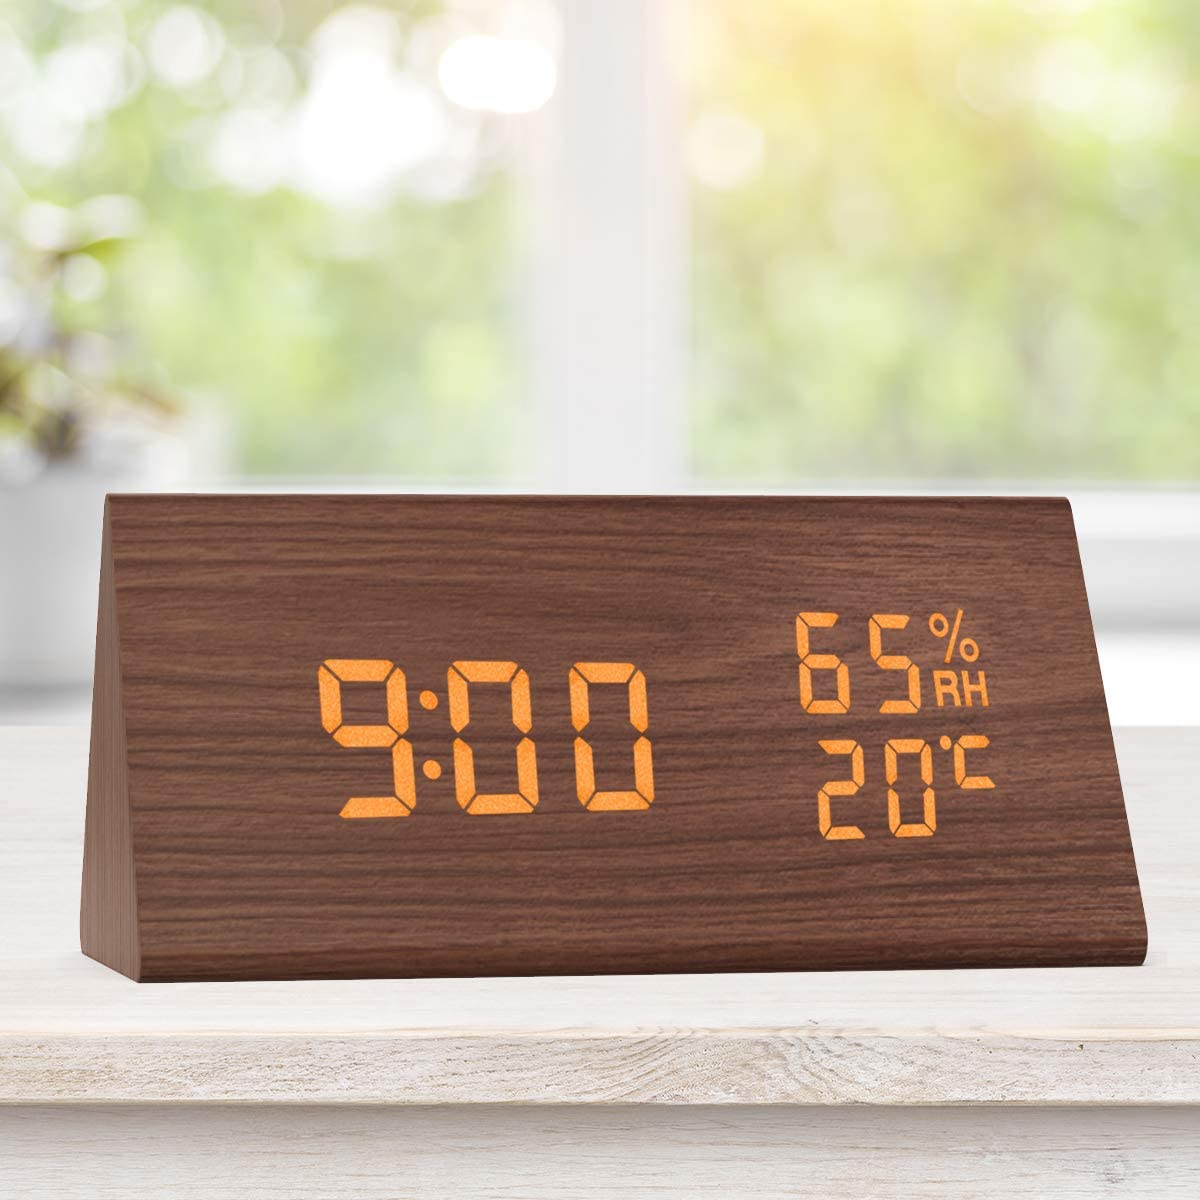 Wooden Alarm Clock, Digital Clock with Large LED Time Display, Humidity & Temperature Detect, 3 Alarm Settings, Sound Control Beside Clock for Bedroom, Kichen, Office ( Brown )